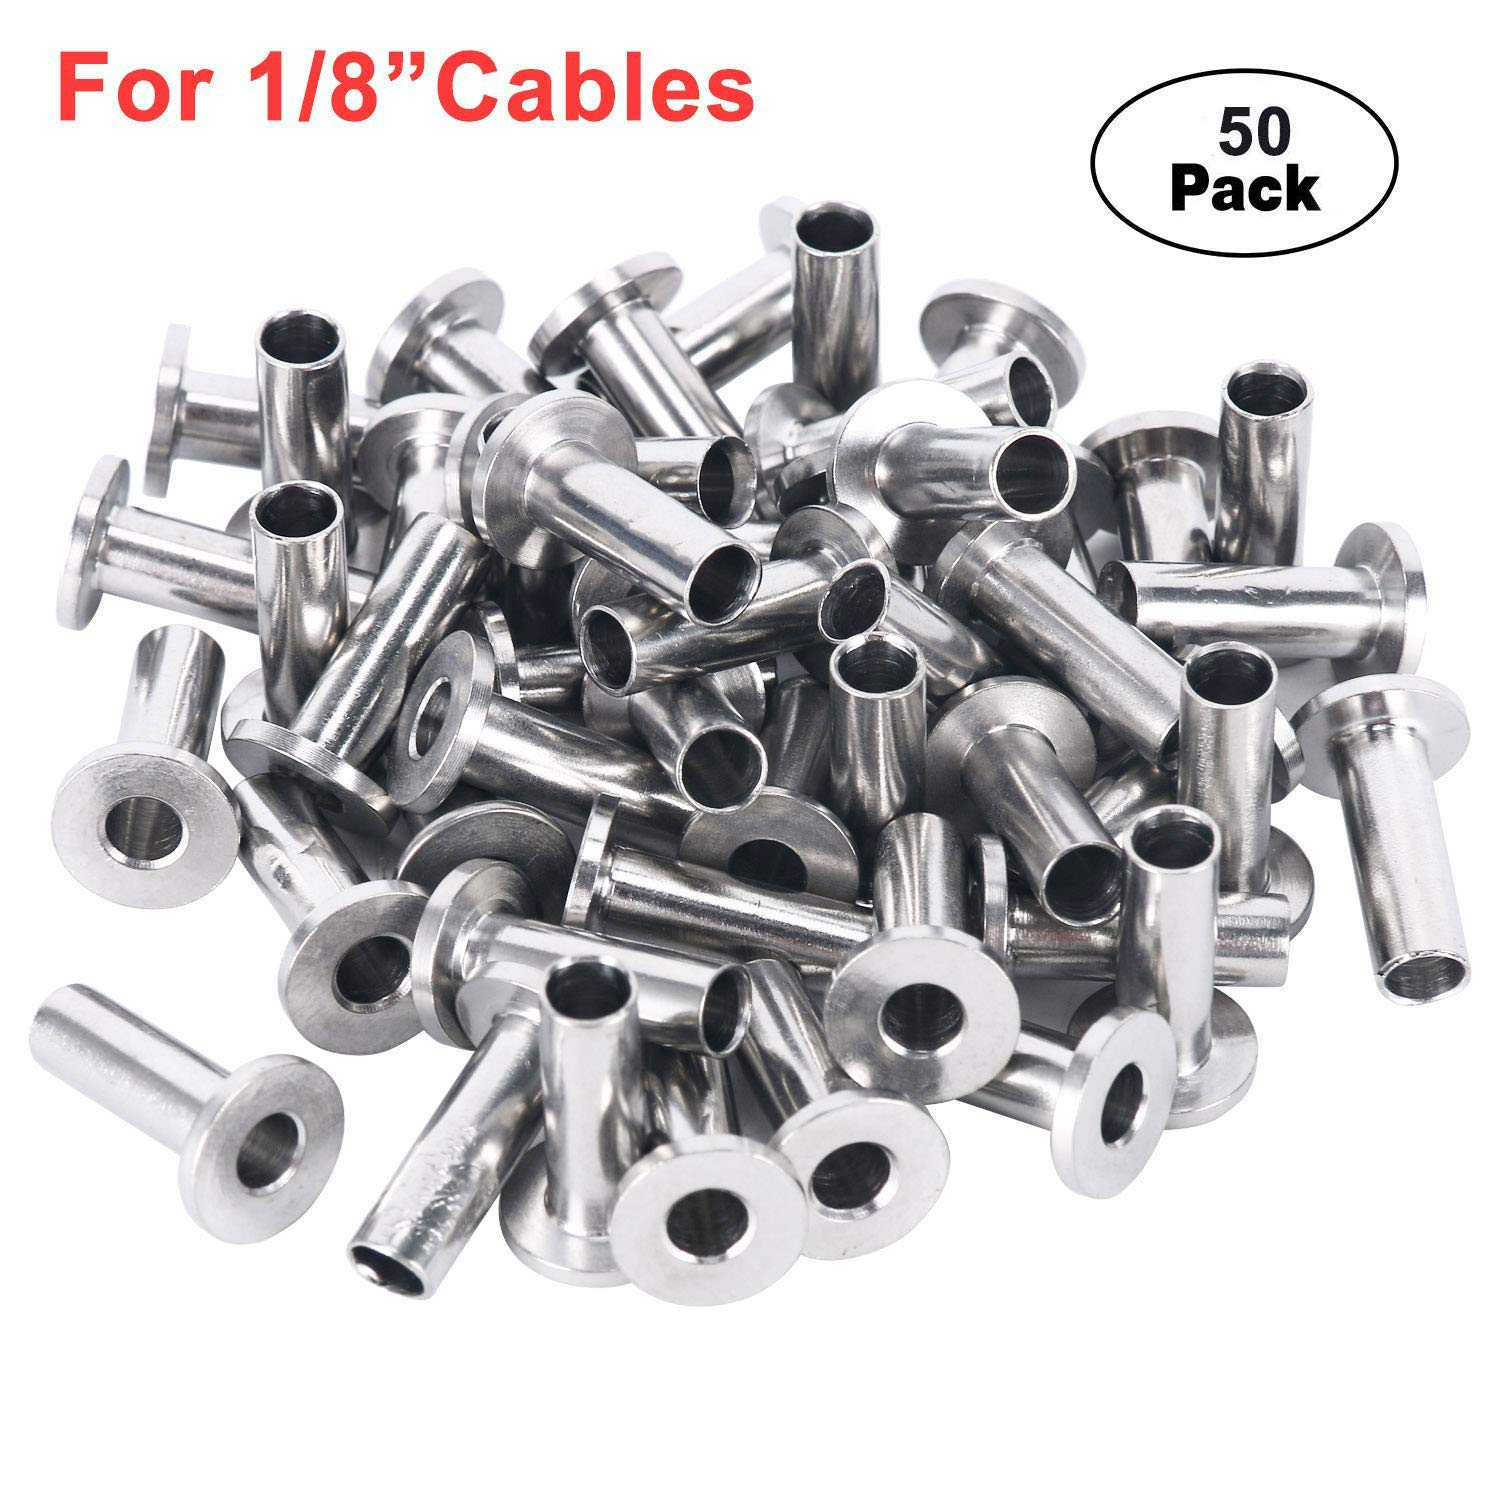 DasMarine 50PCS Stainless Steel Protector Sleeves for 1/8 Cable Railing, T316 Marine Grade